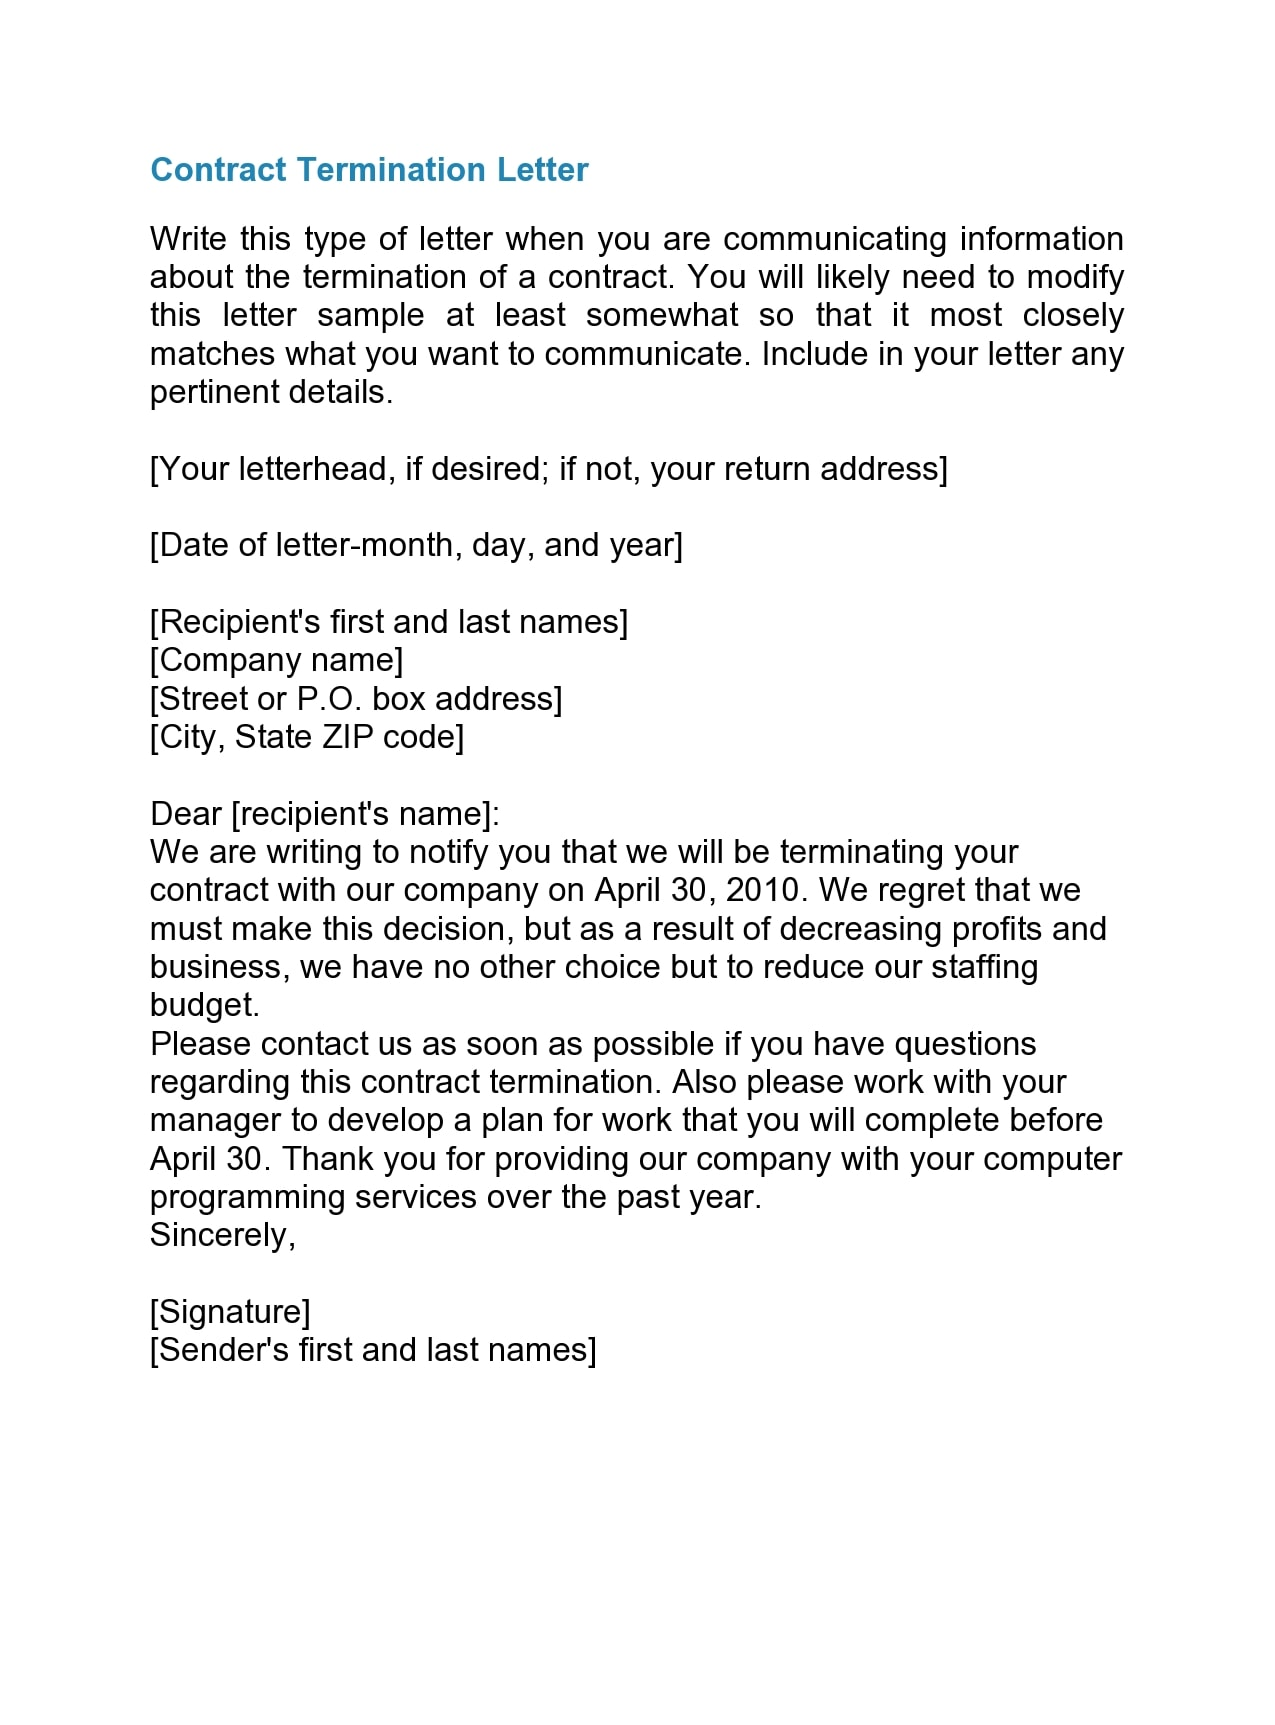 contract termination letter 43